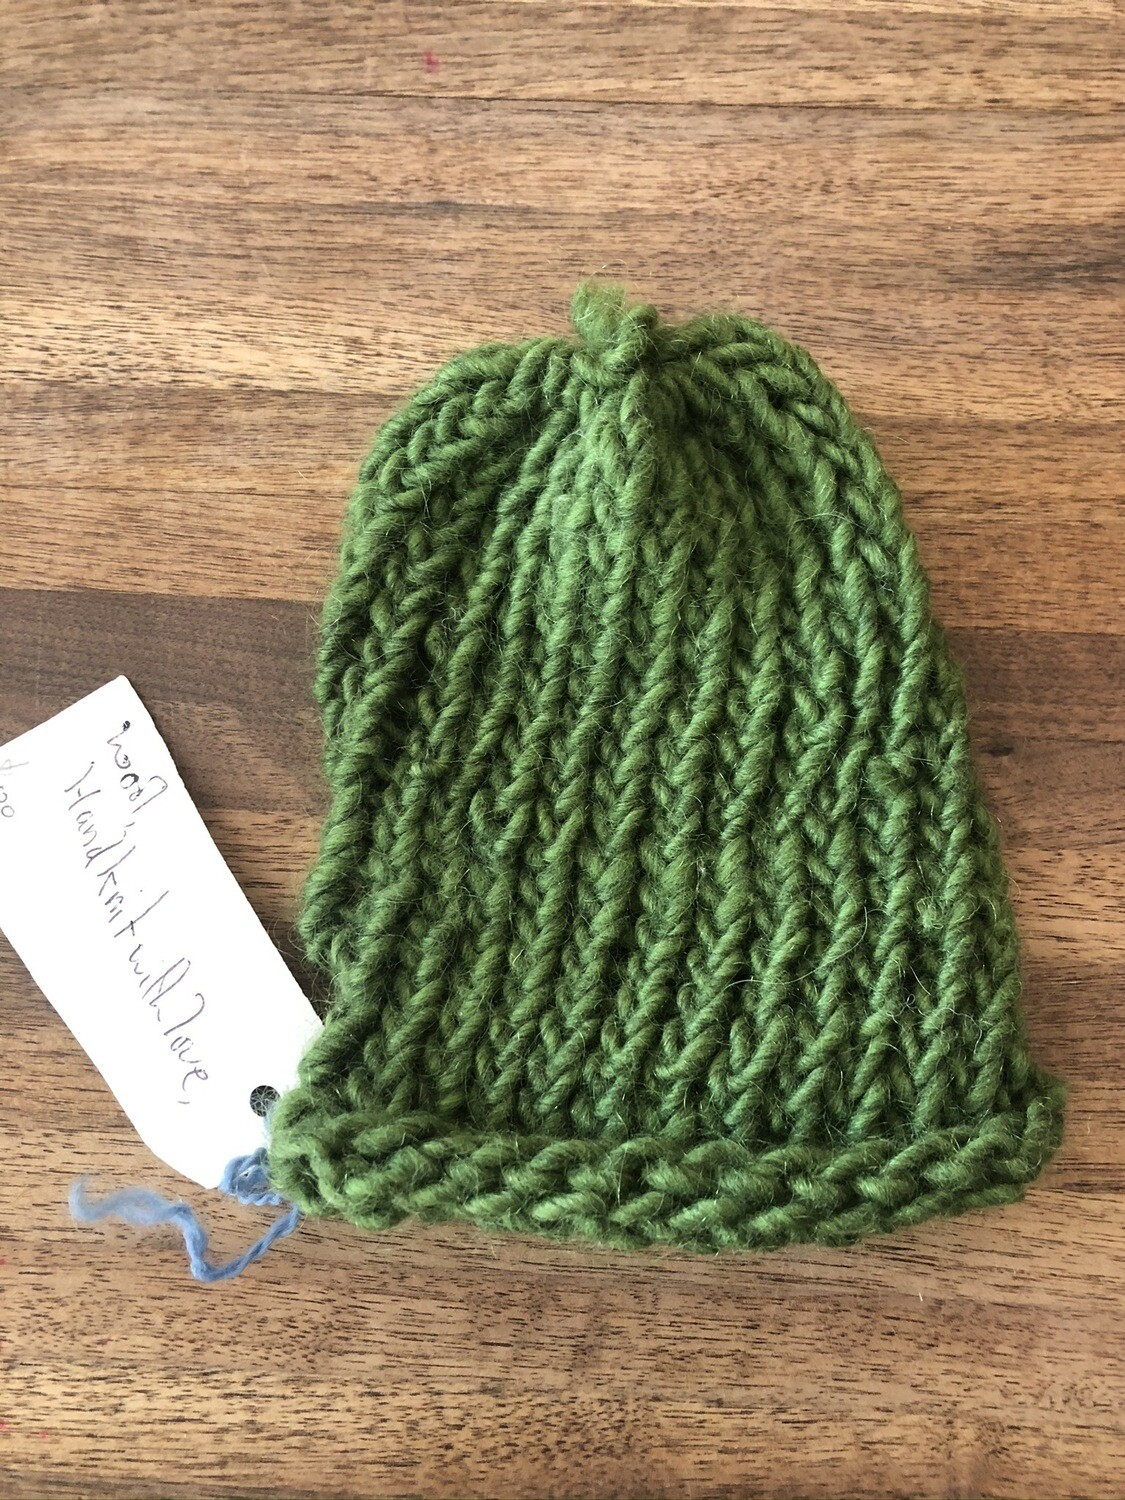 knitted hat small 4519